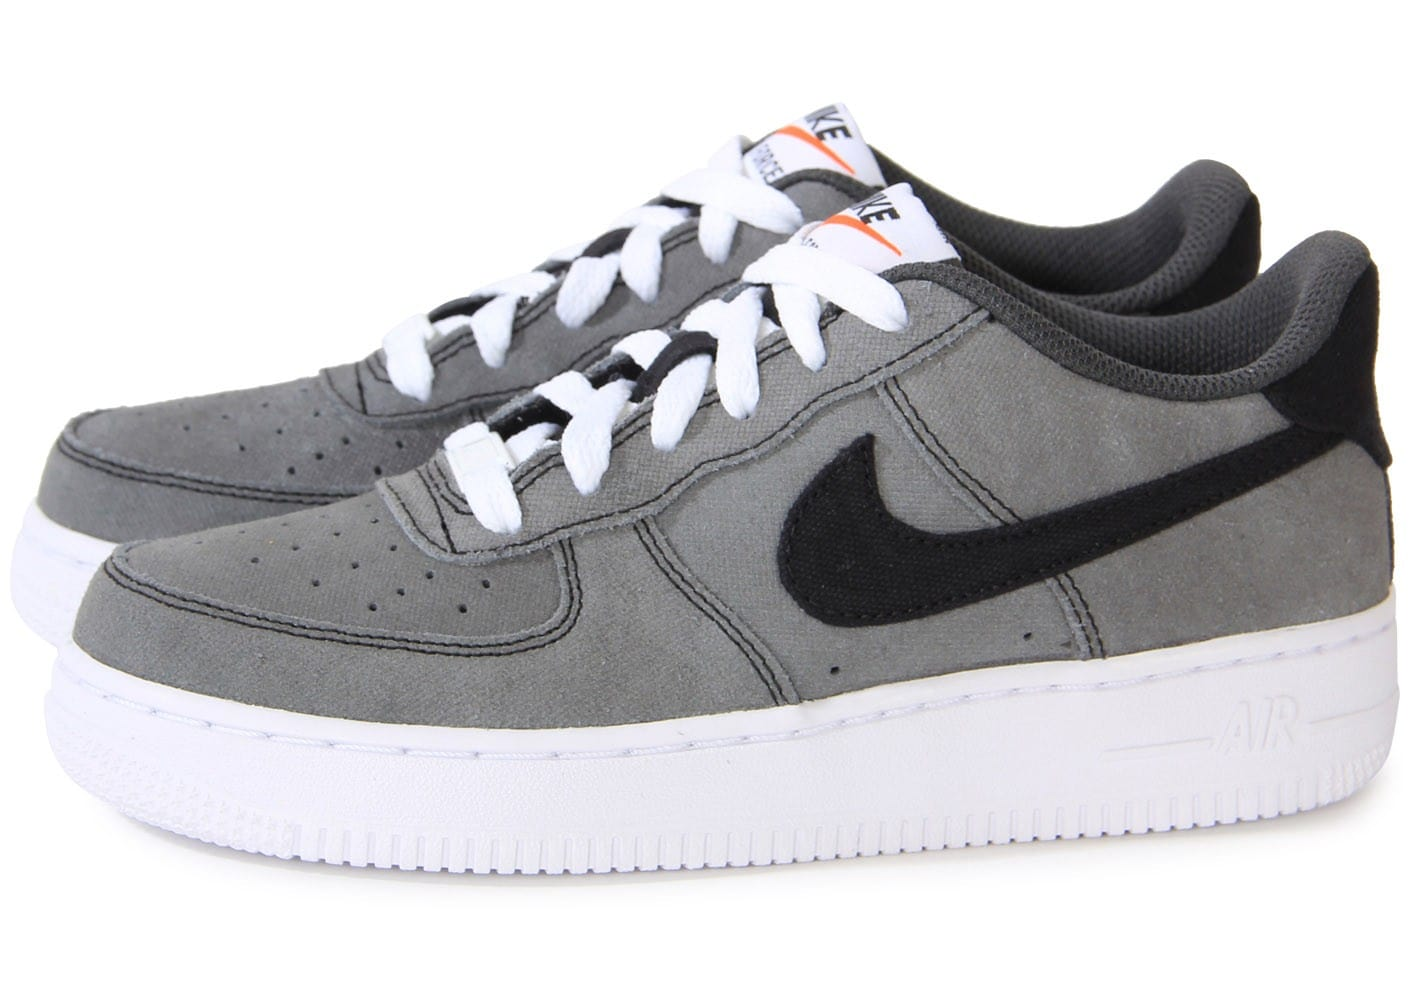 nike air force 1 low grise gs chaussures chaussures chausport. Black Bedroom Furniture Sets. Home Design Ideas